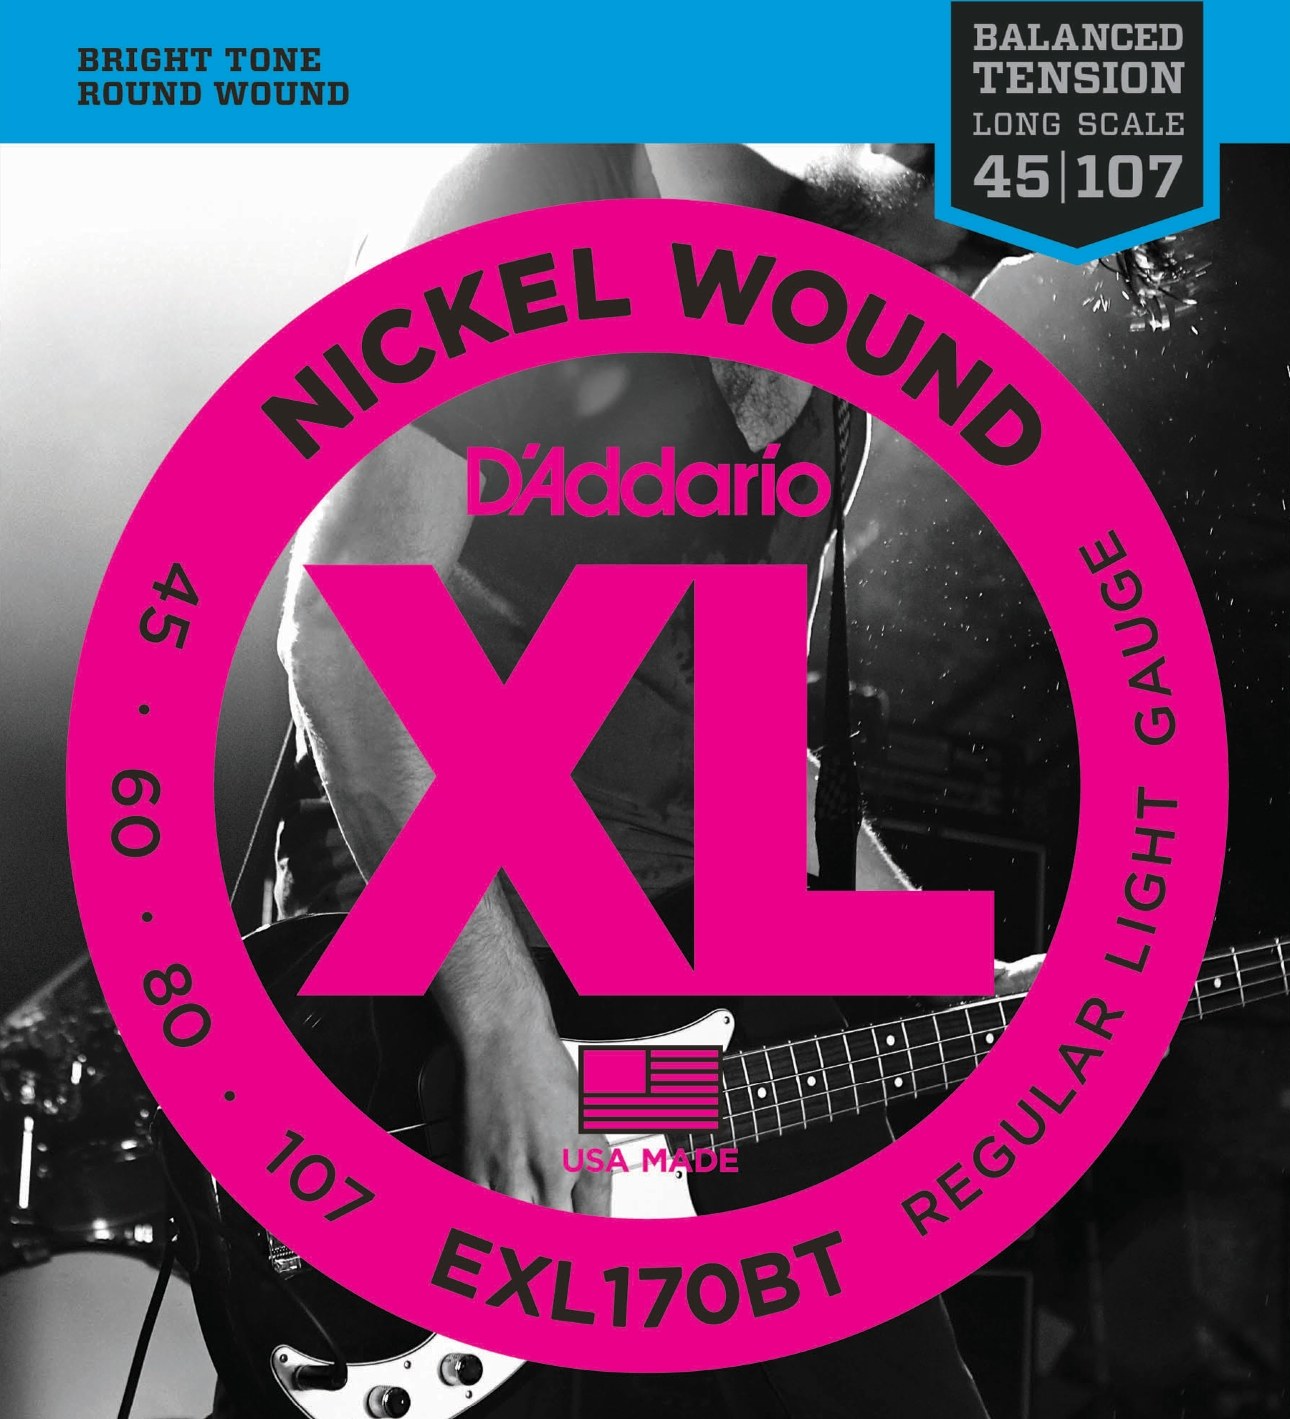 D'Addario EXL160BT Nickel Wound Bass Guitar Strings, Balanced Tension Medium, 50-120 D'Addario &Co. Inc